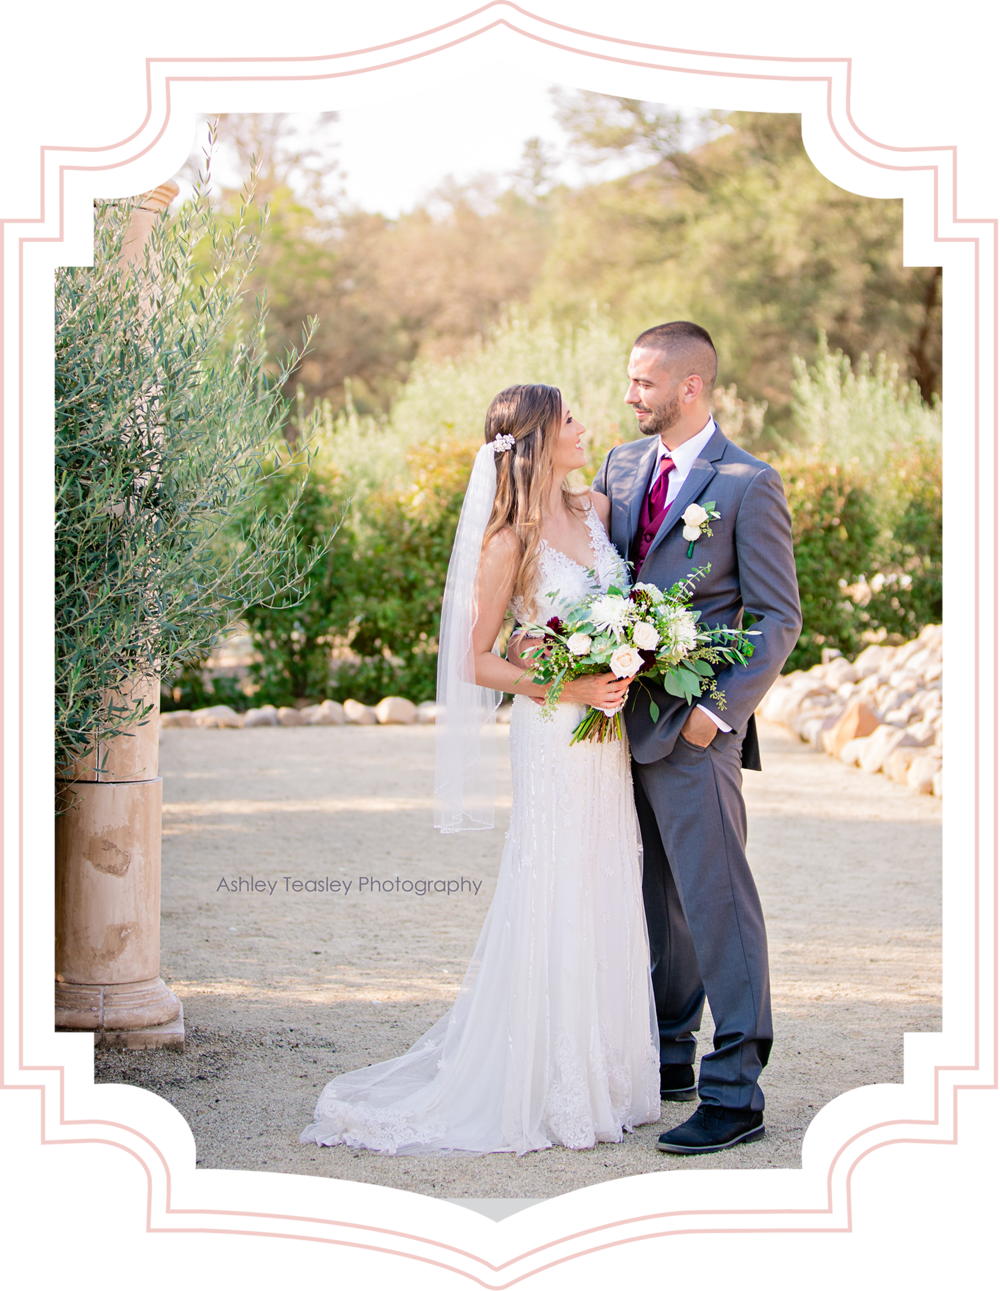 Villa florentina wedding photographer - sacramento ca- ashley teasley photography.png